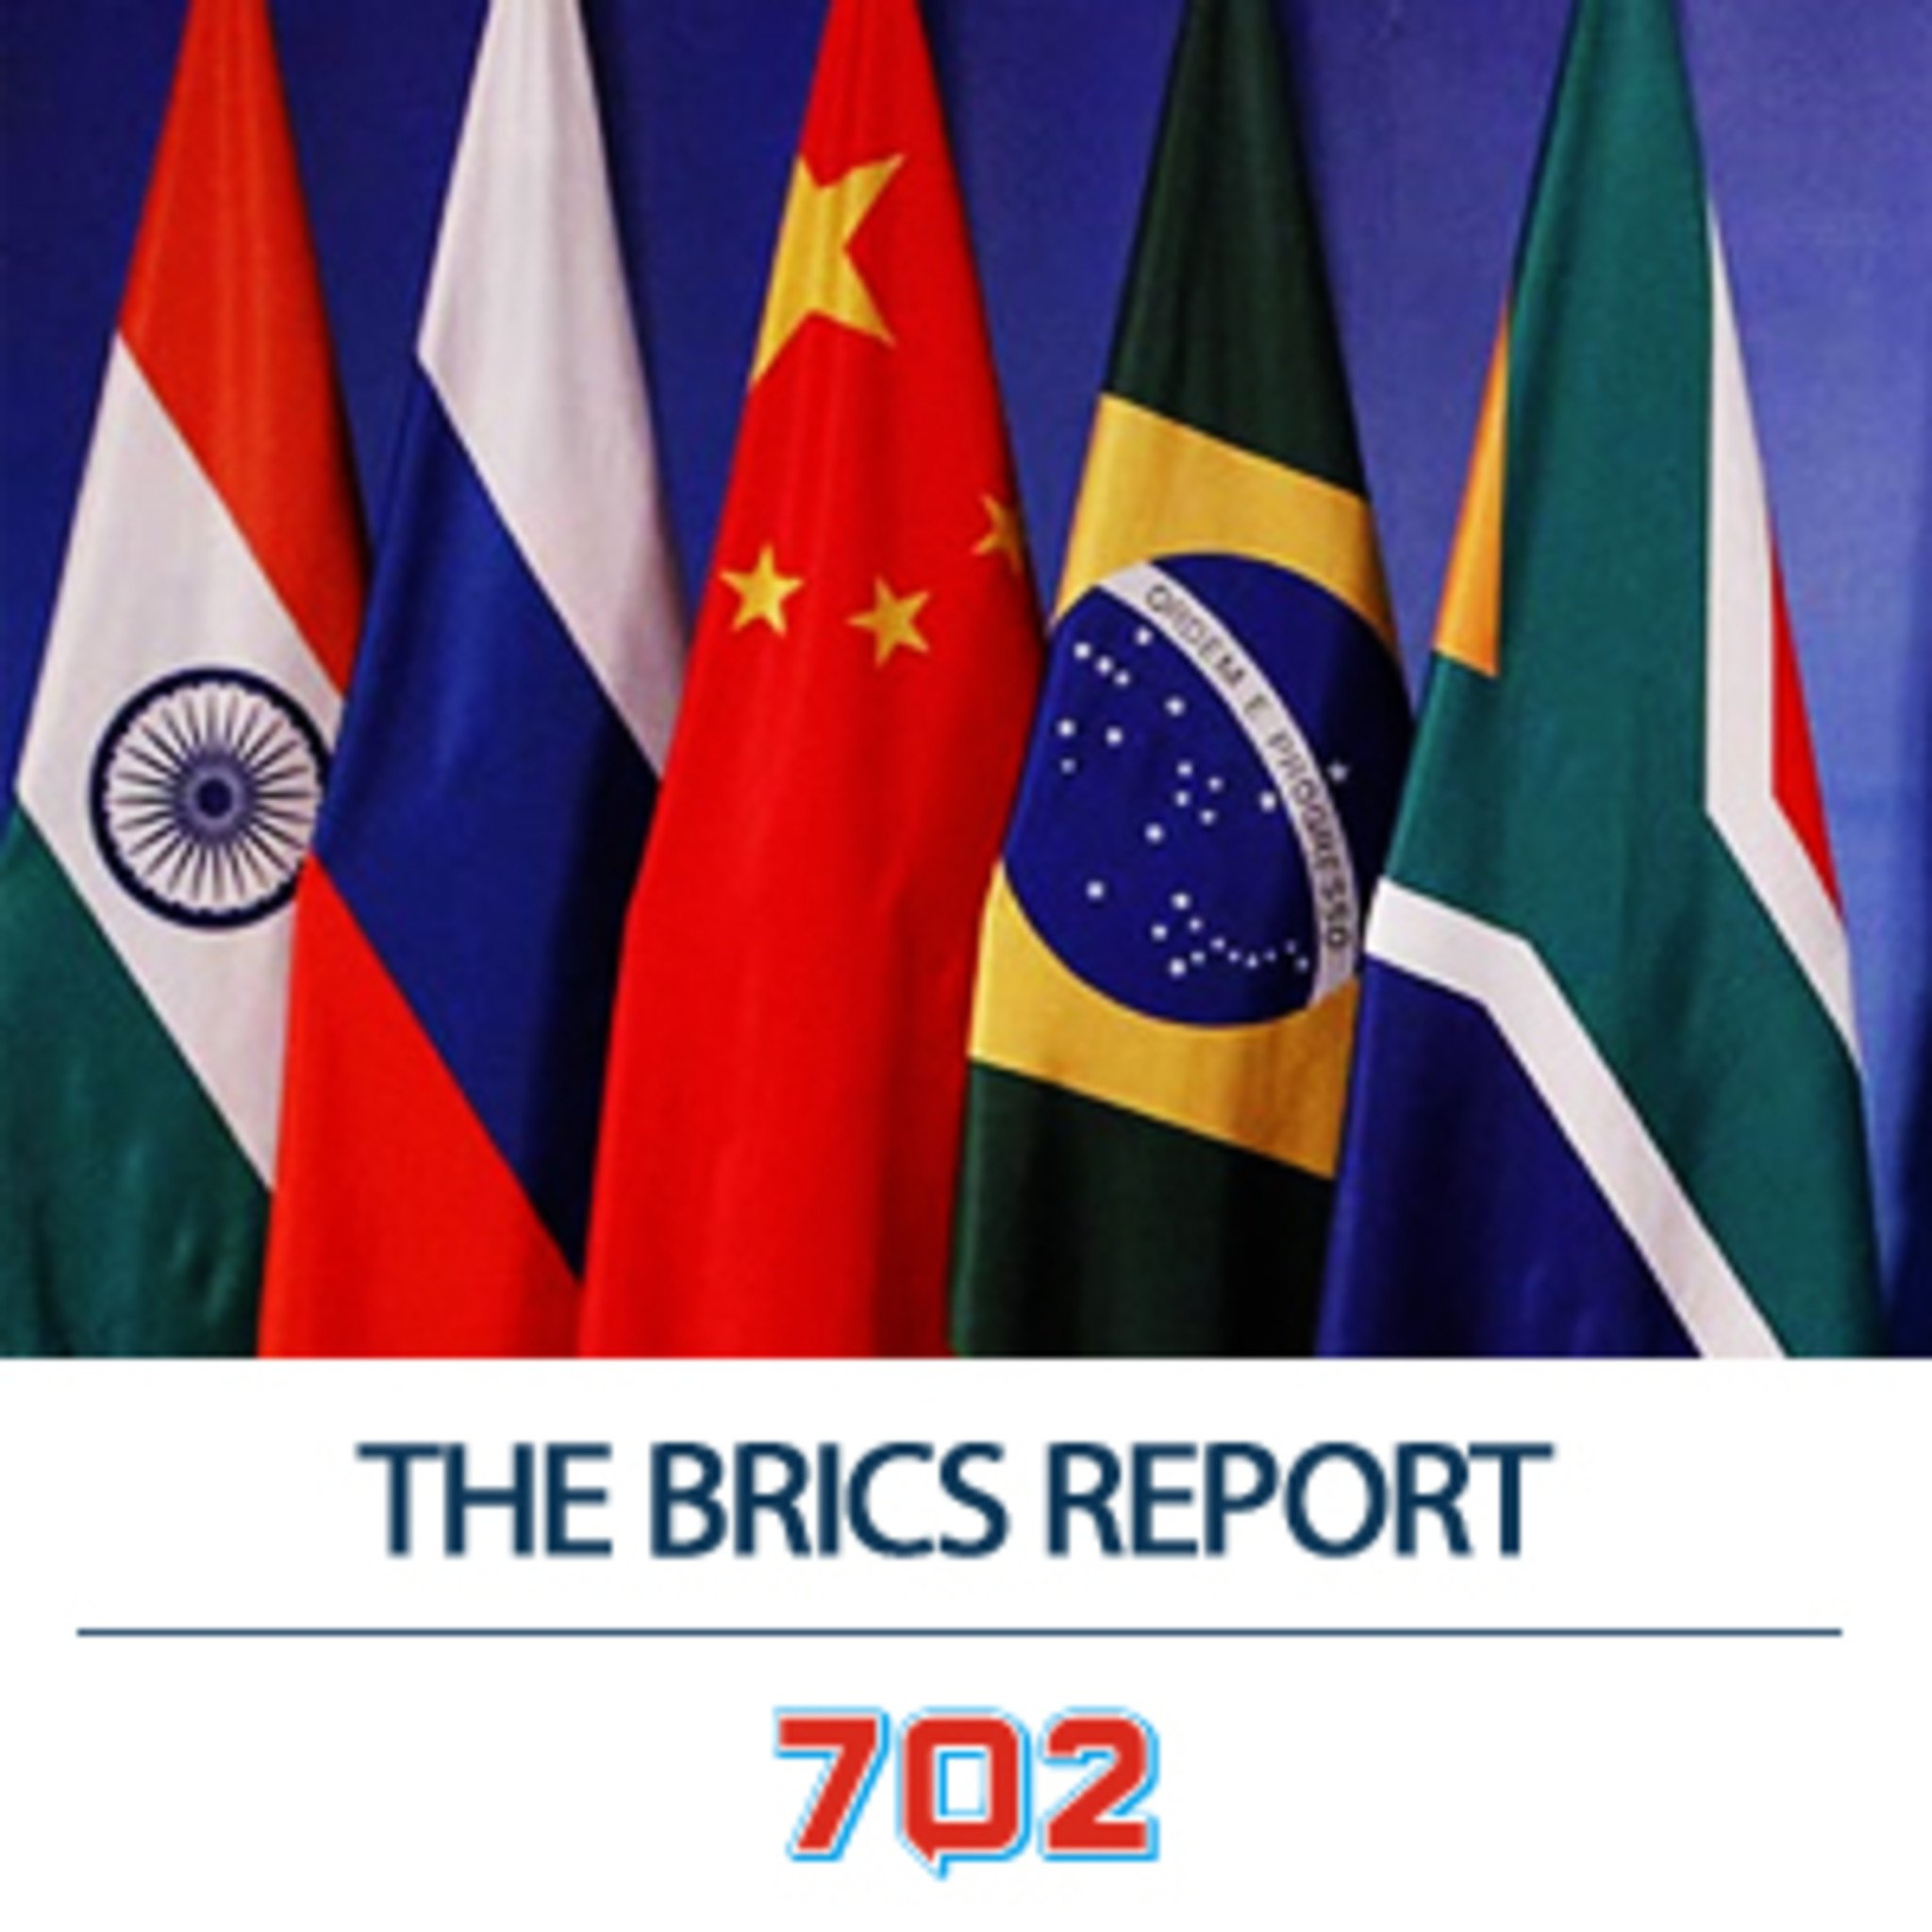 BRICS Report: Russia